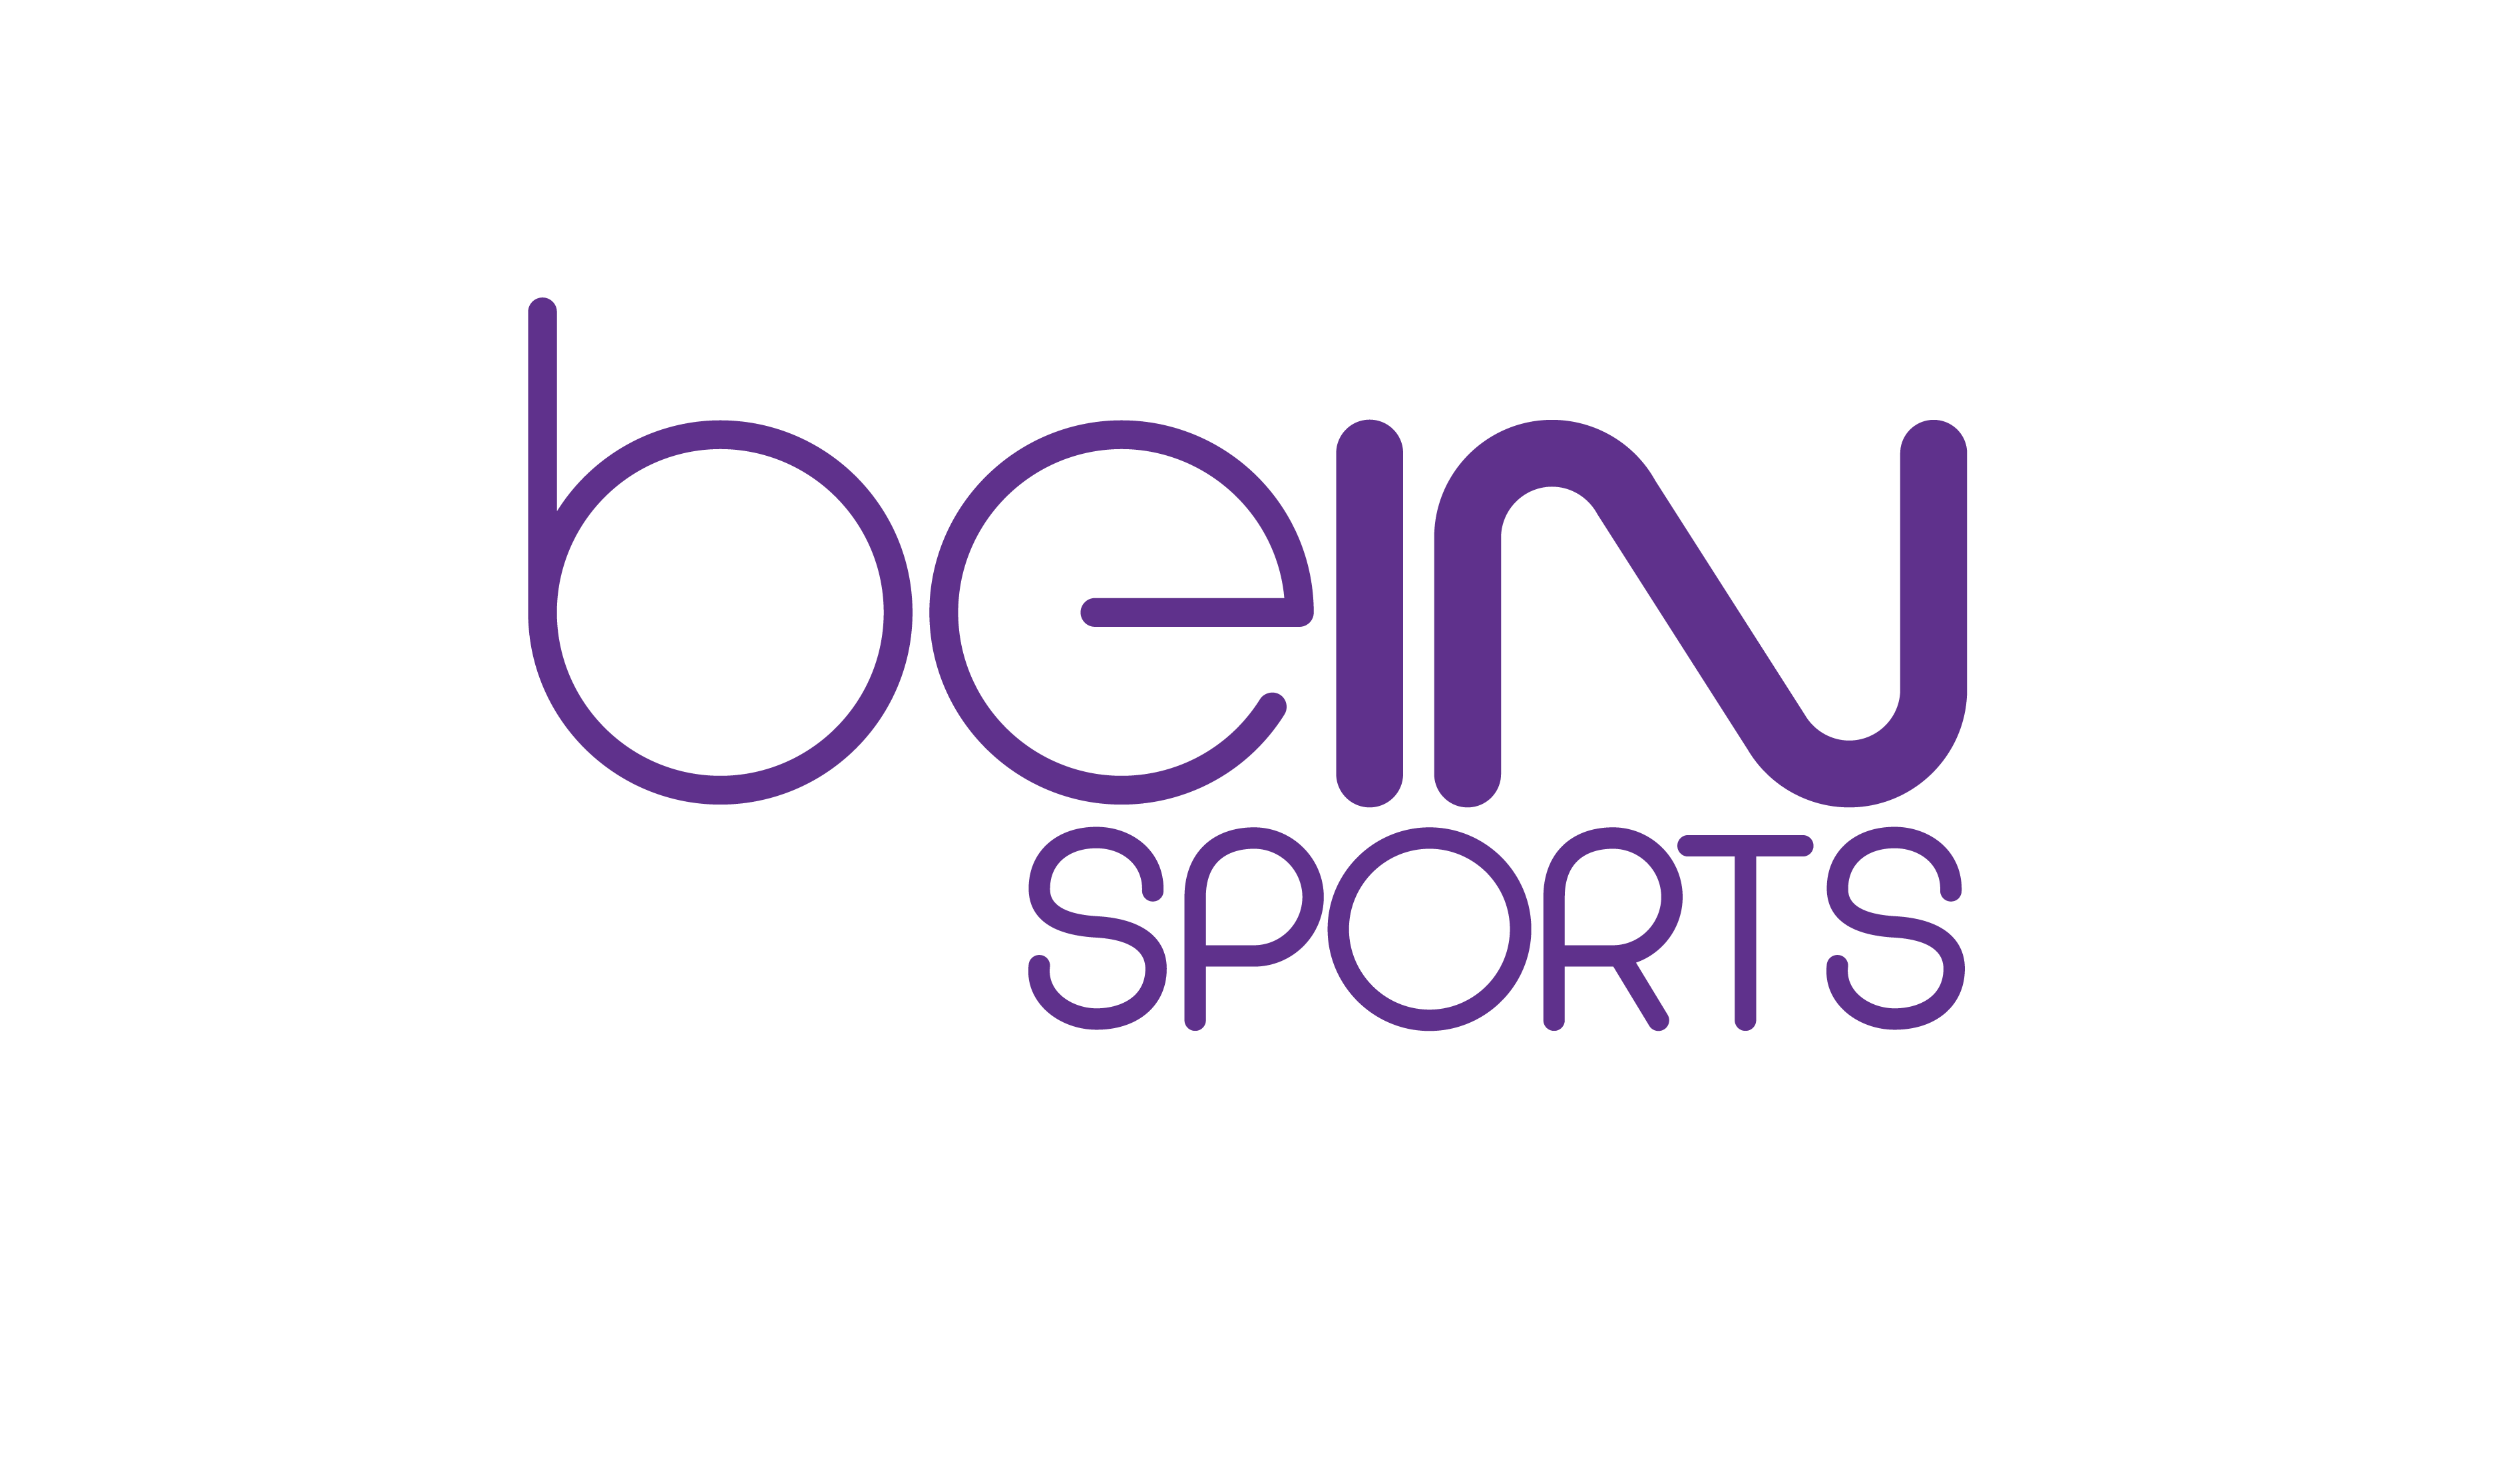 Bein sports logo png. File sport wikimedia commons